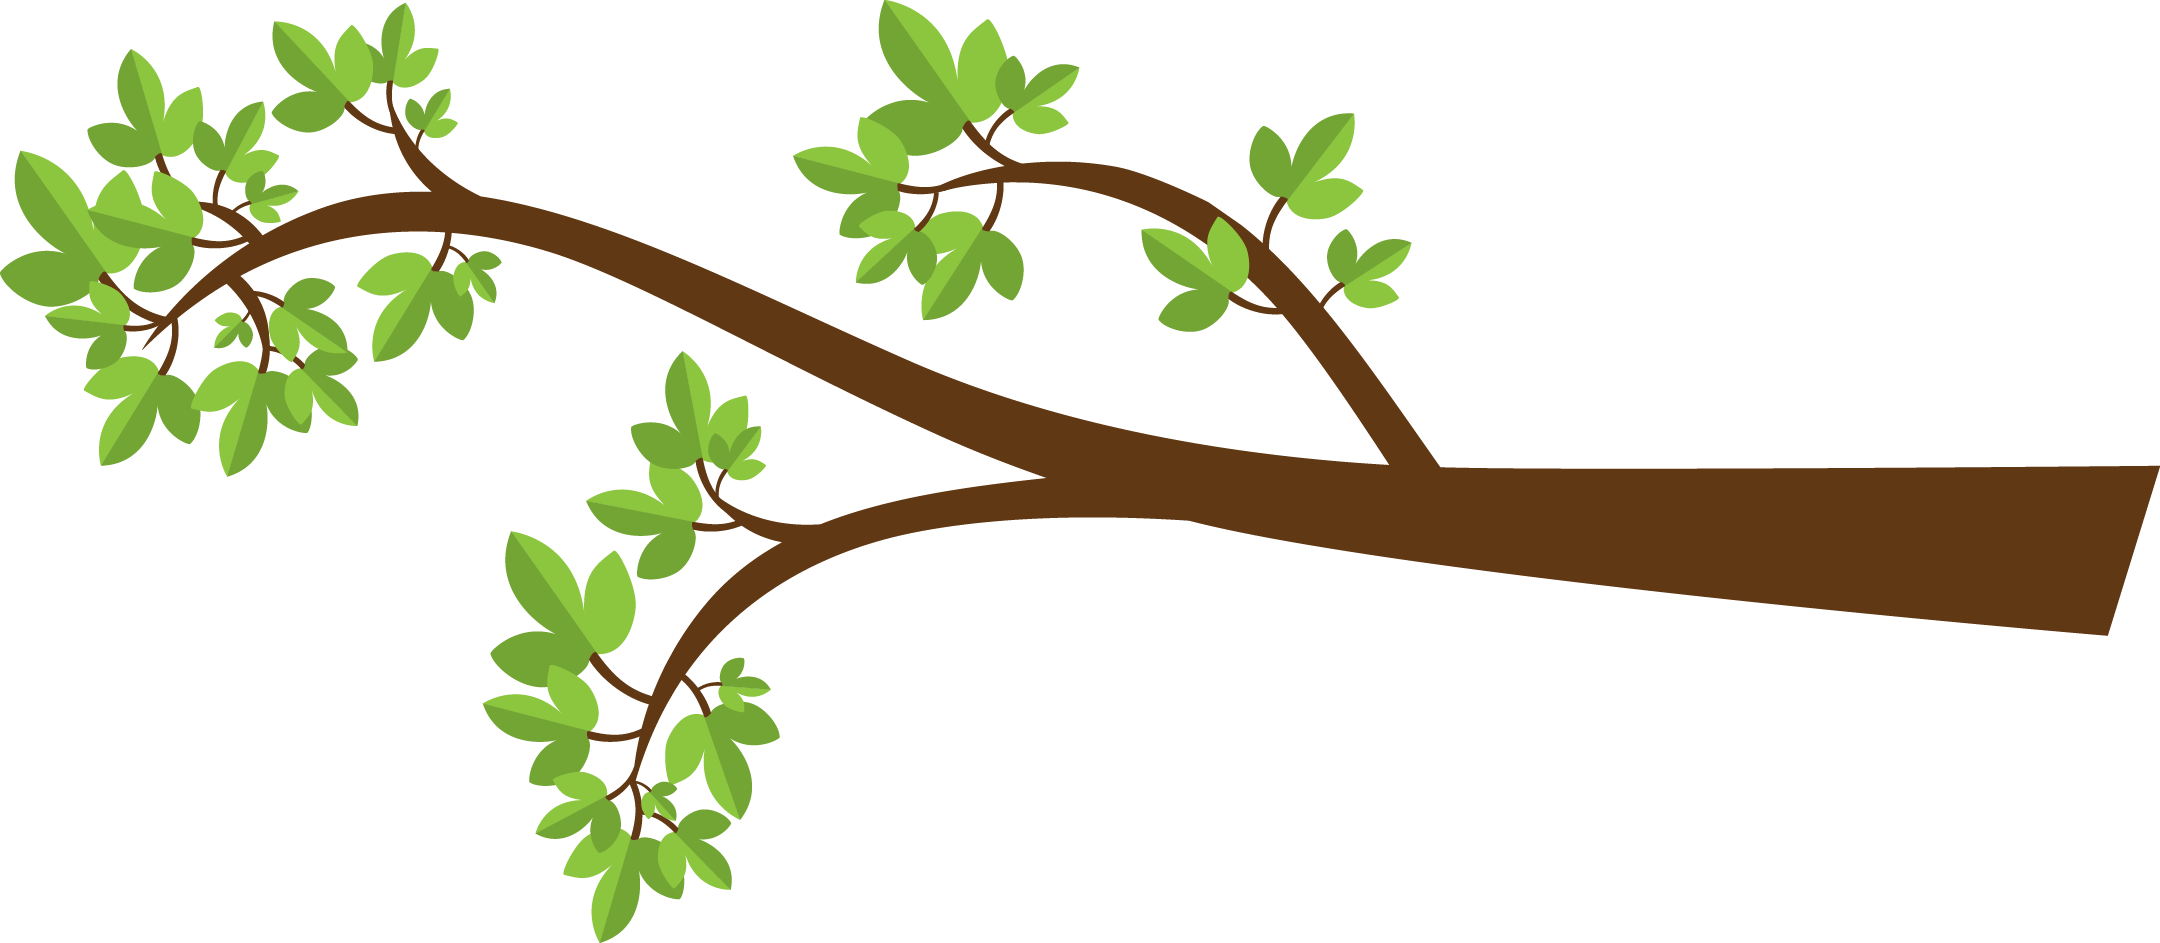 Tree clipart branch a #3